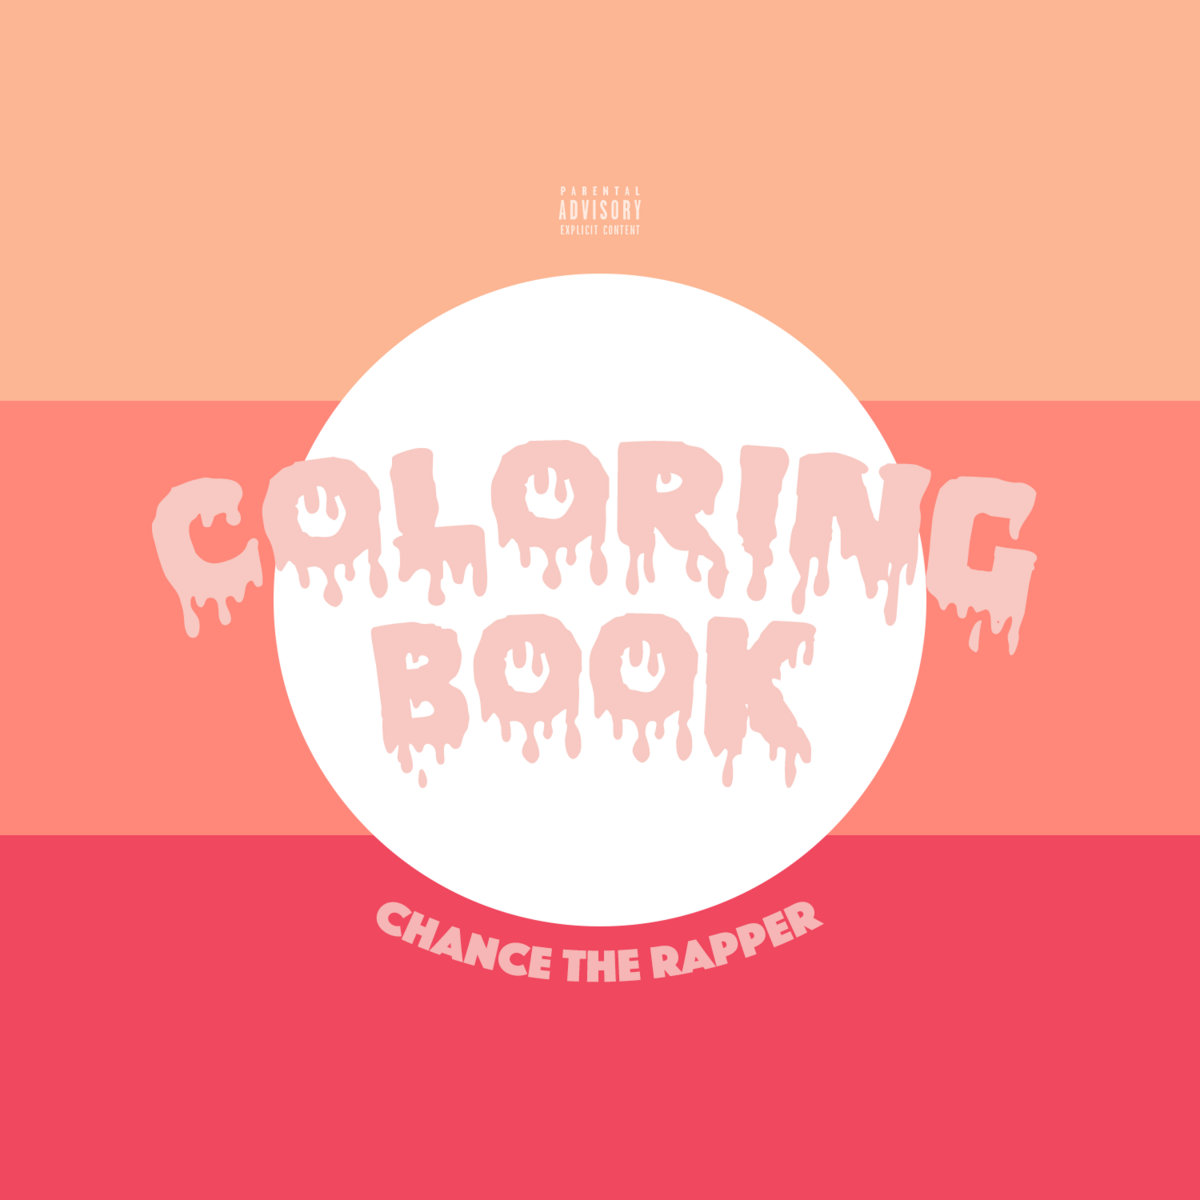 Coloring book download link chance the rapper - Chance The Rapper Coloring Book Type Beat Prod Sonic Justice